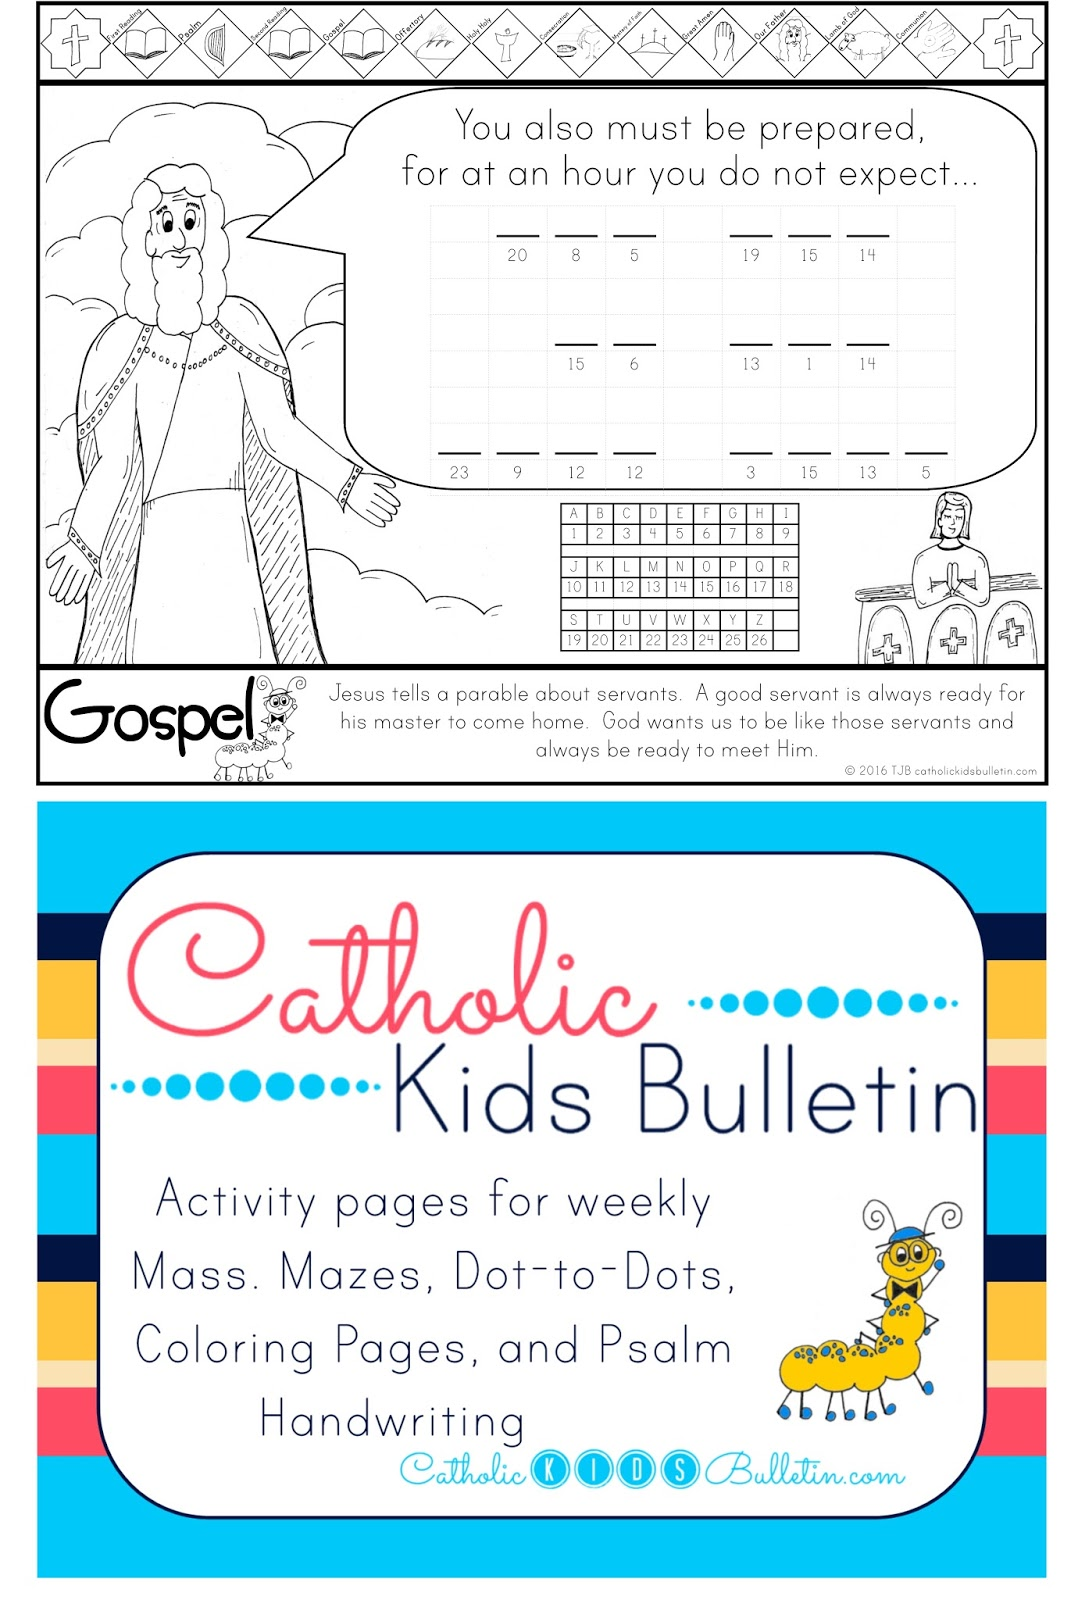 Catholic Kids: August CKB